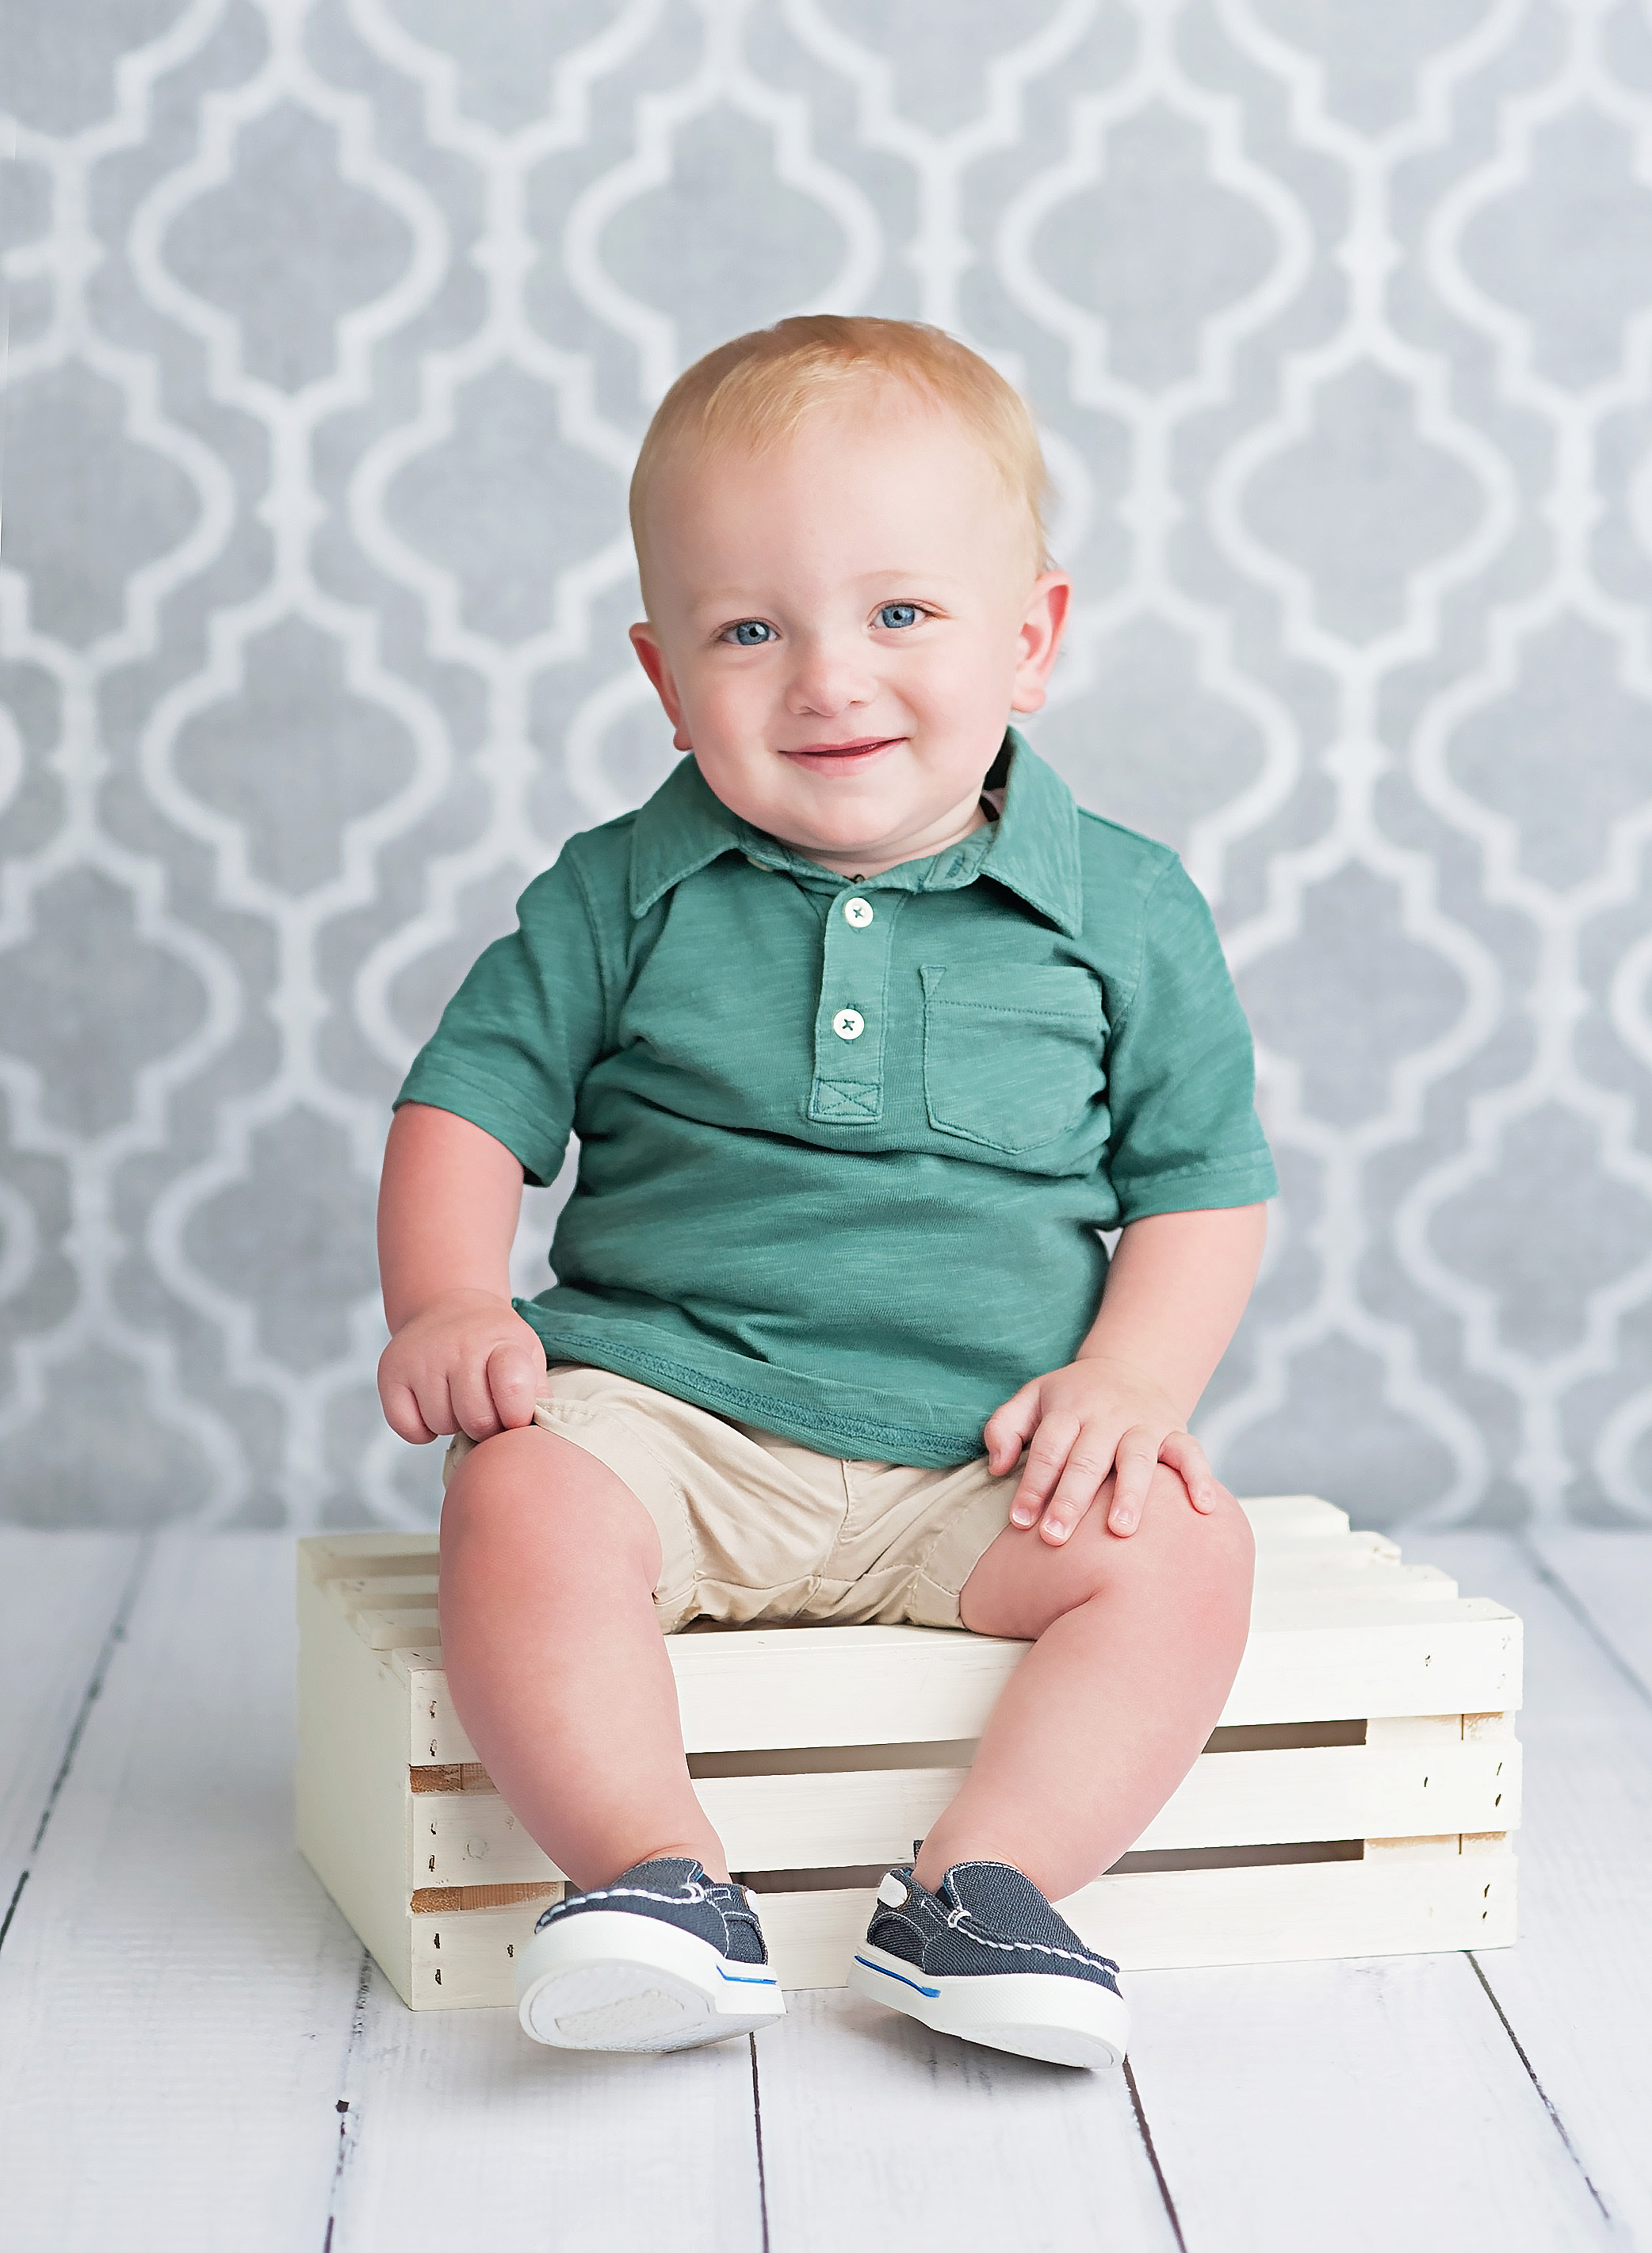 one year olf boy sitting on white crate